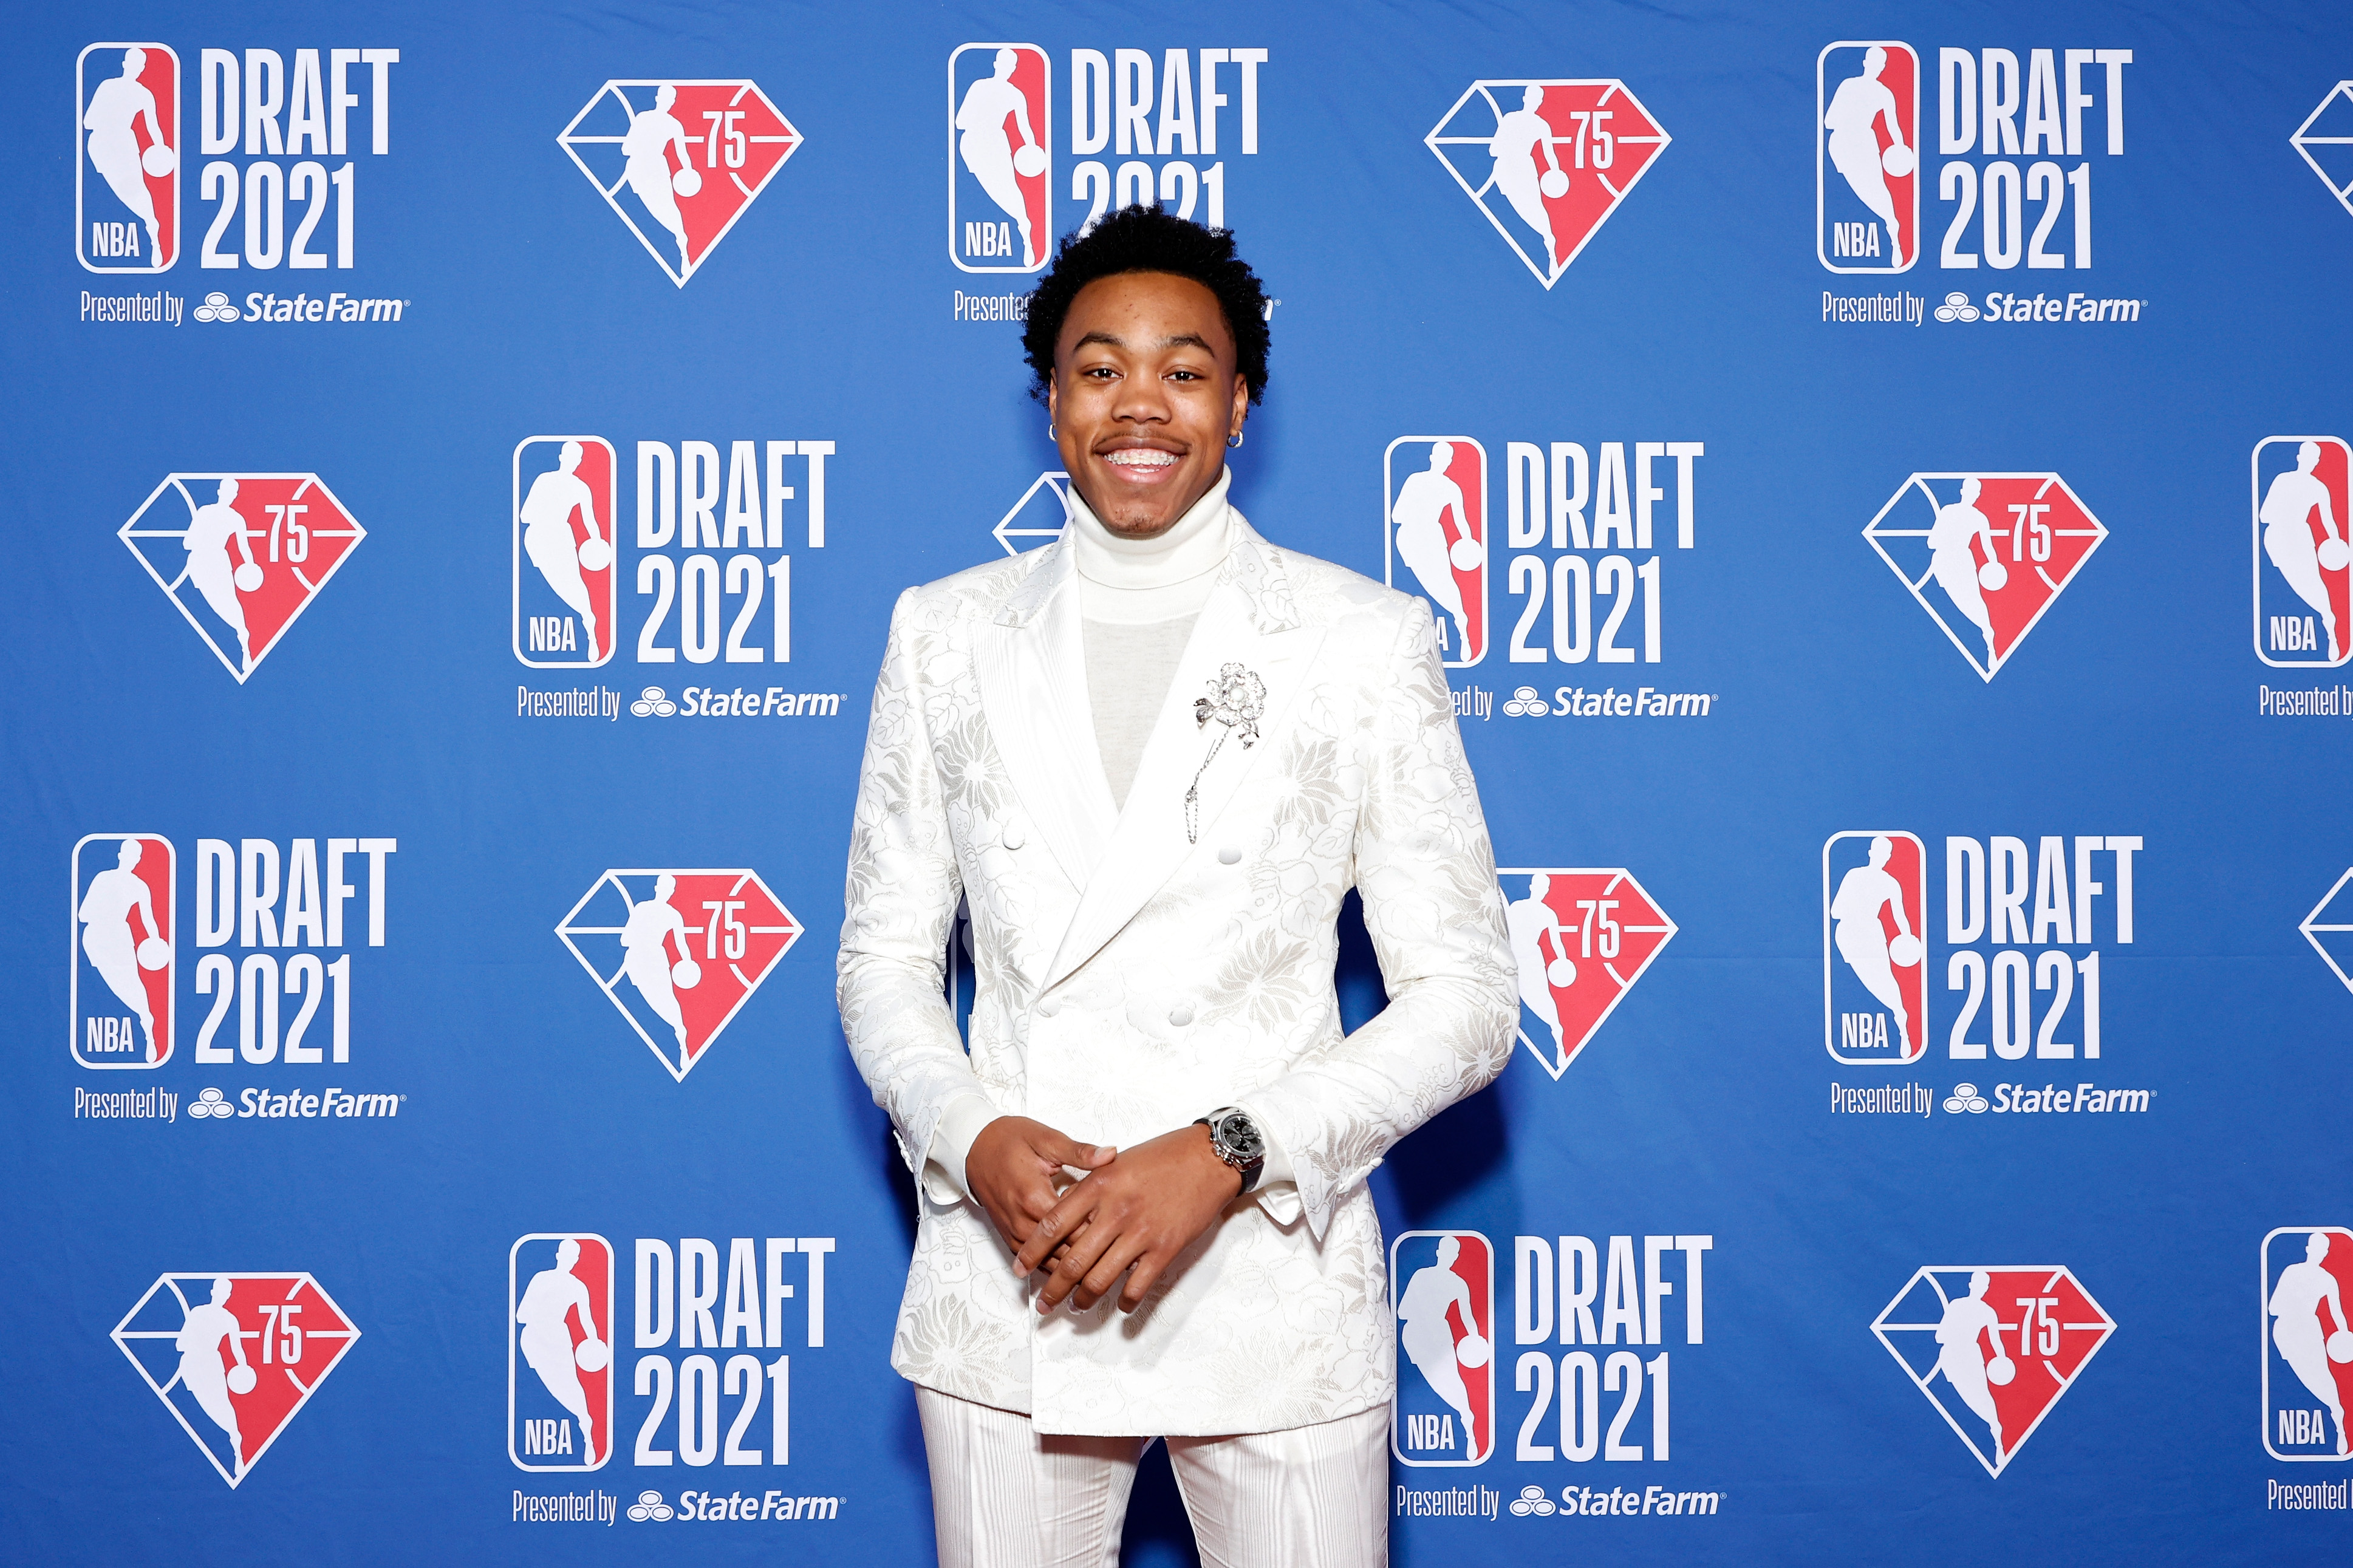 Scottie Barnes poses for photos on the red carpet during the 2021 NBA Draft at the Barclays Center on July 29, 2021 in New York City.